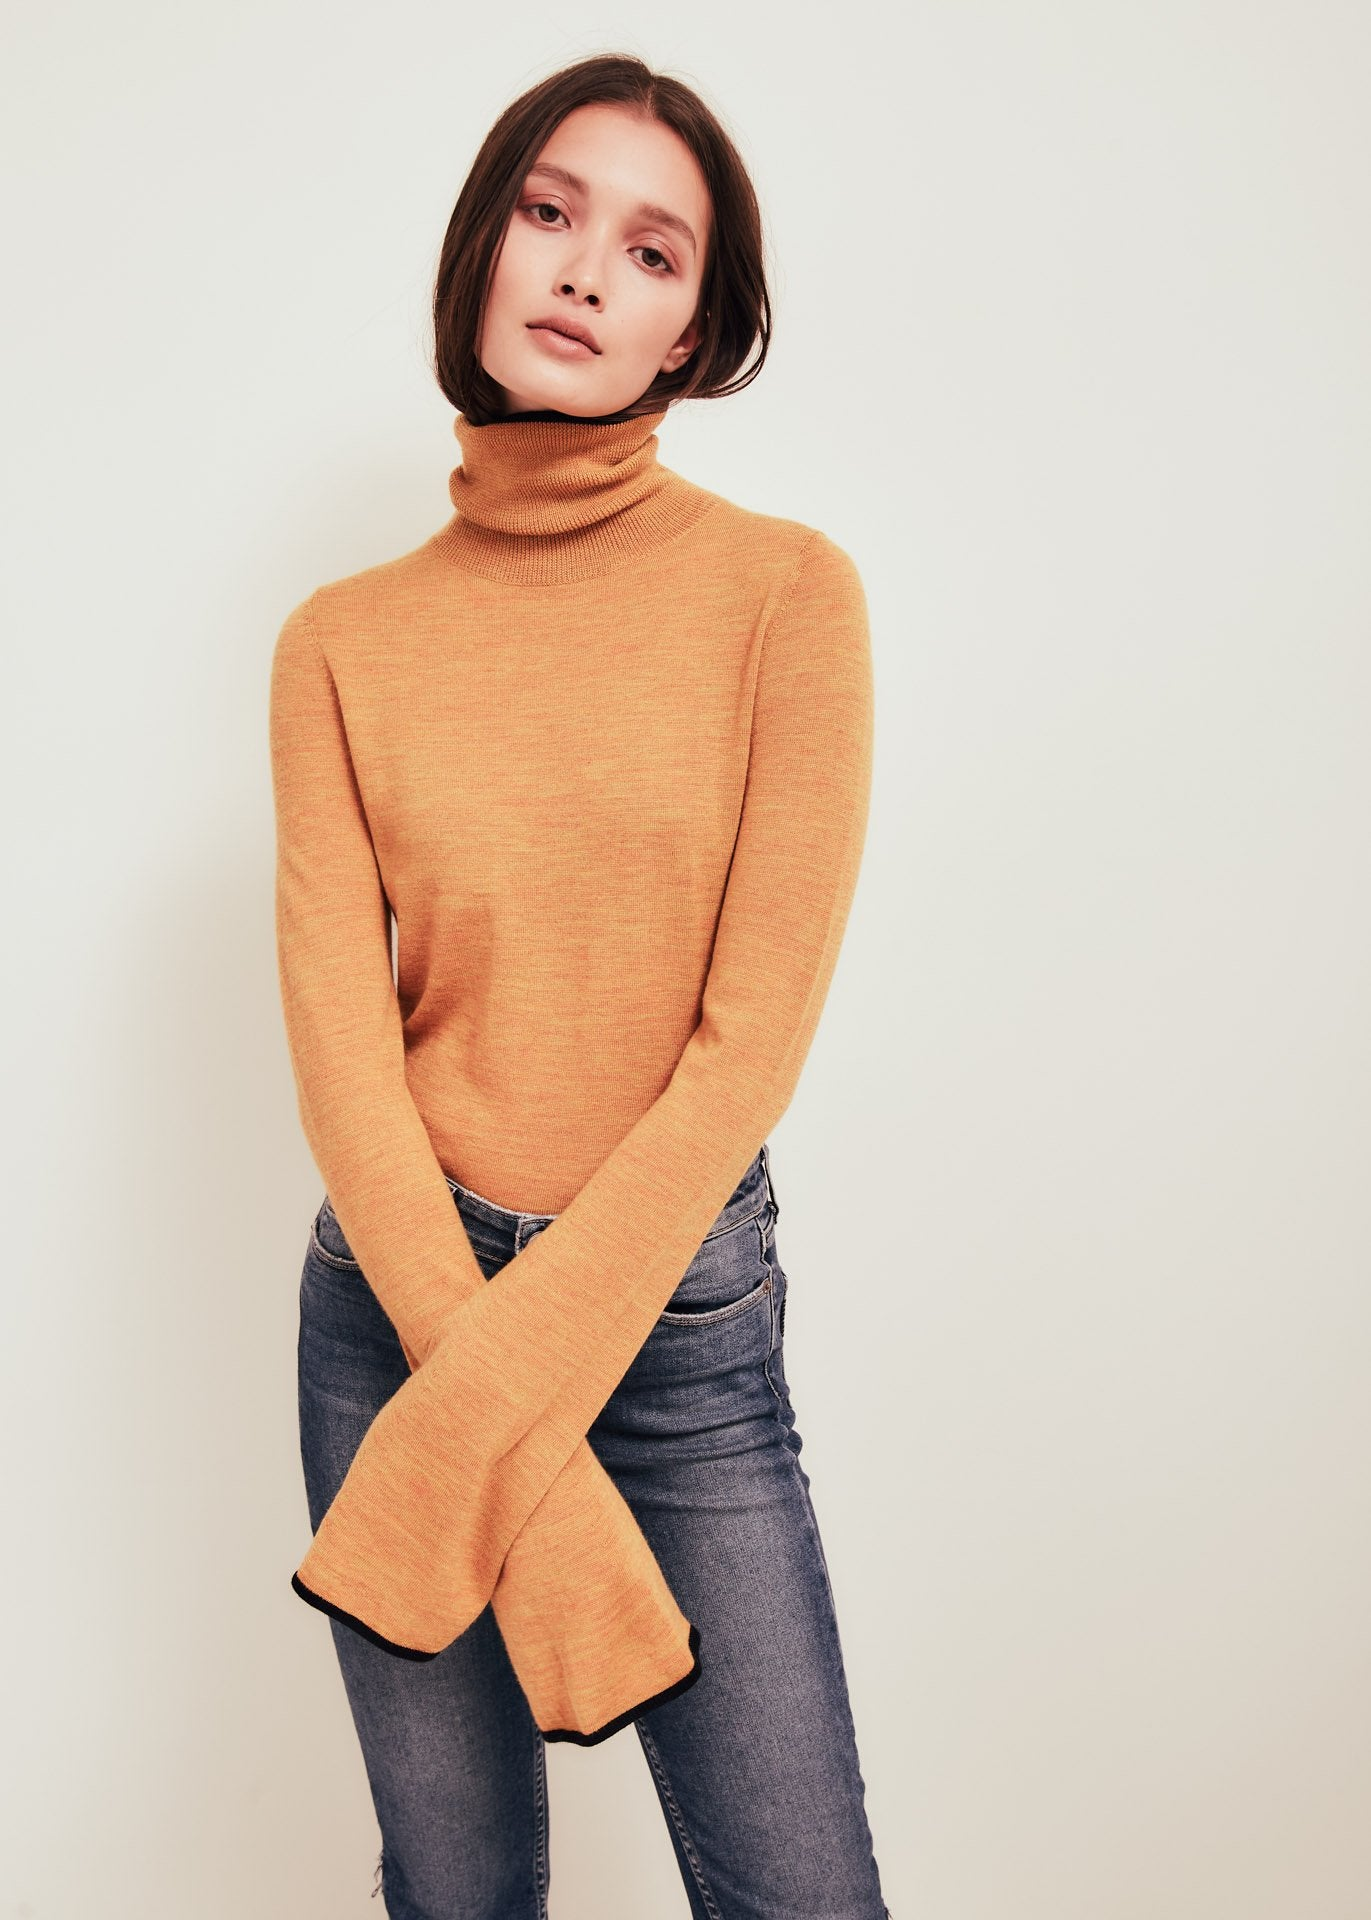 Orange Fine Merino Wool Turtleneck Sweater - Paloma